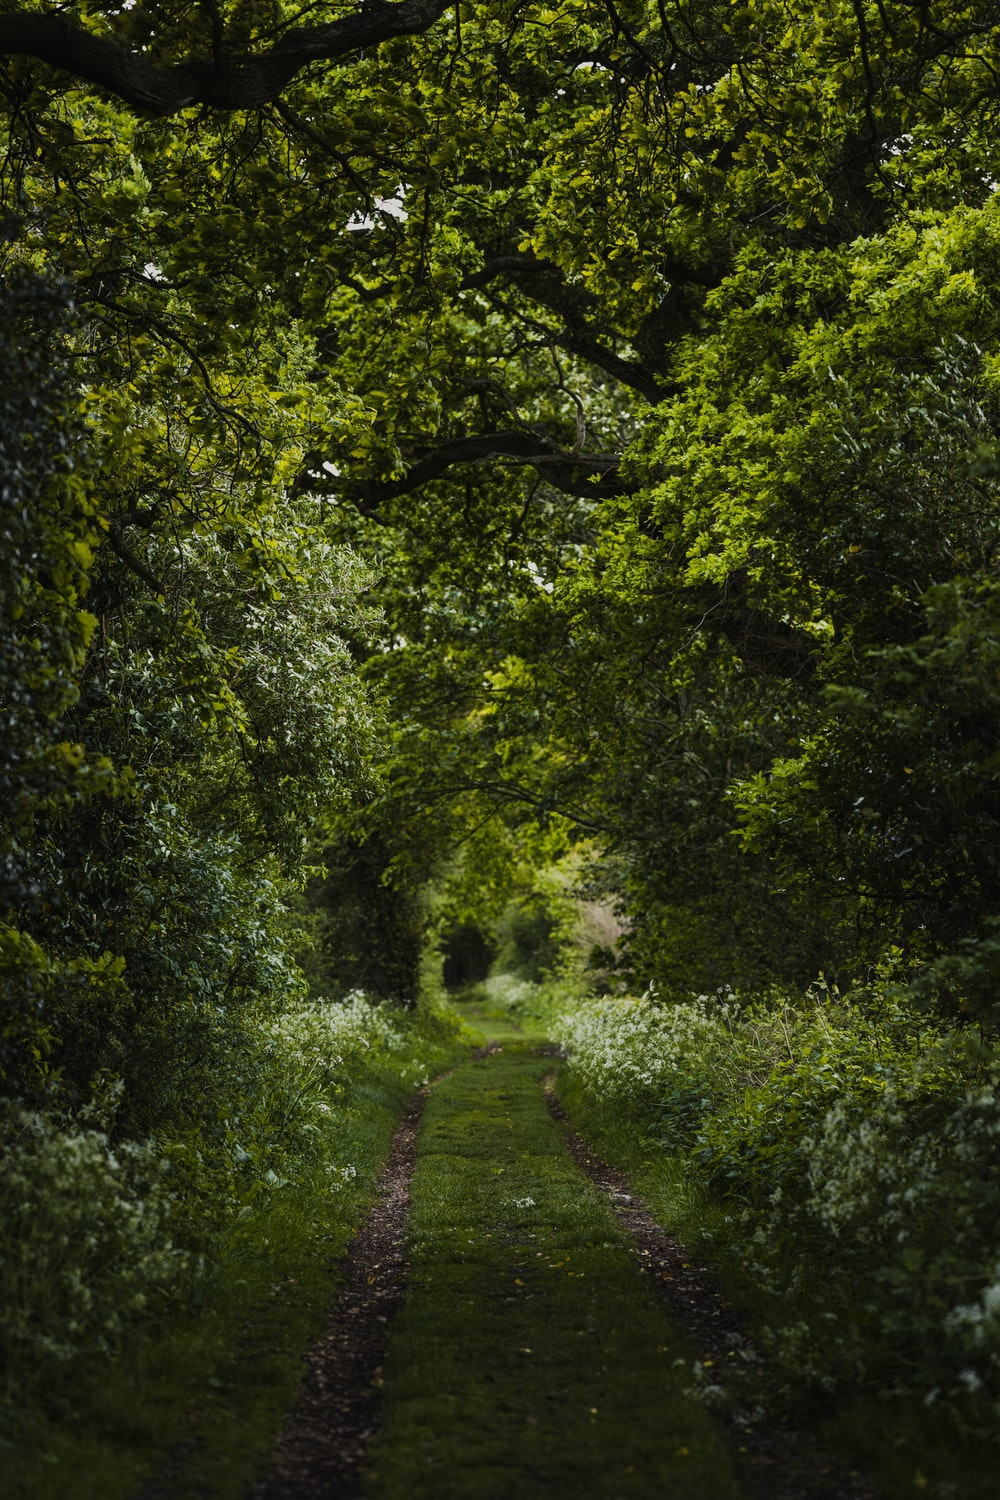 pathway between green trees during daytime